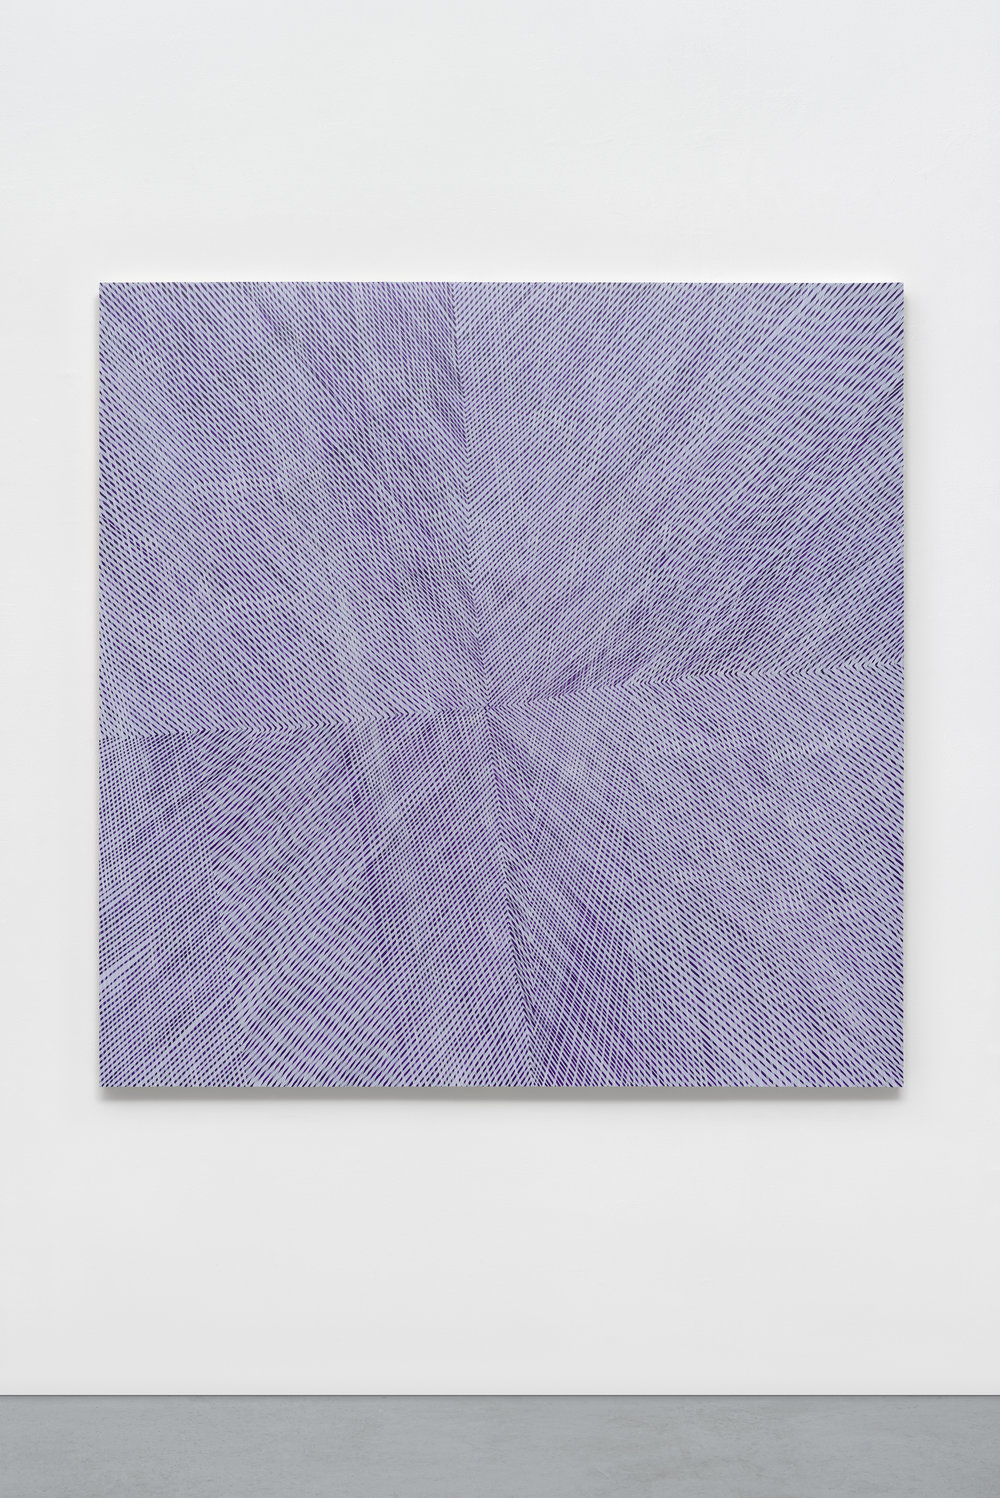 """Lilac Aura,"" 2017, acrylic and interference on panel, 60 x 60 x 2 inches"